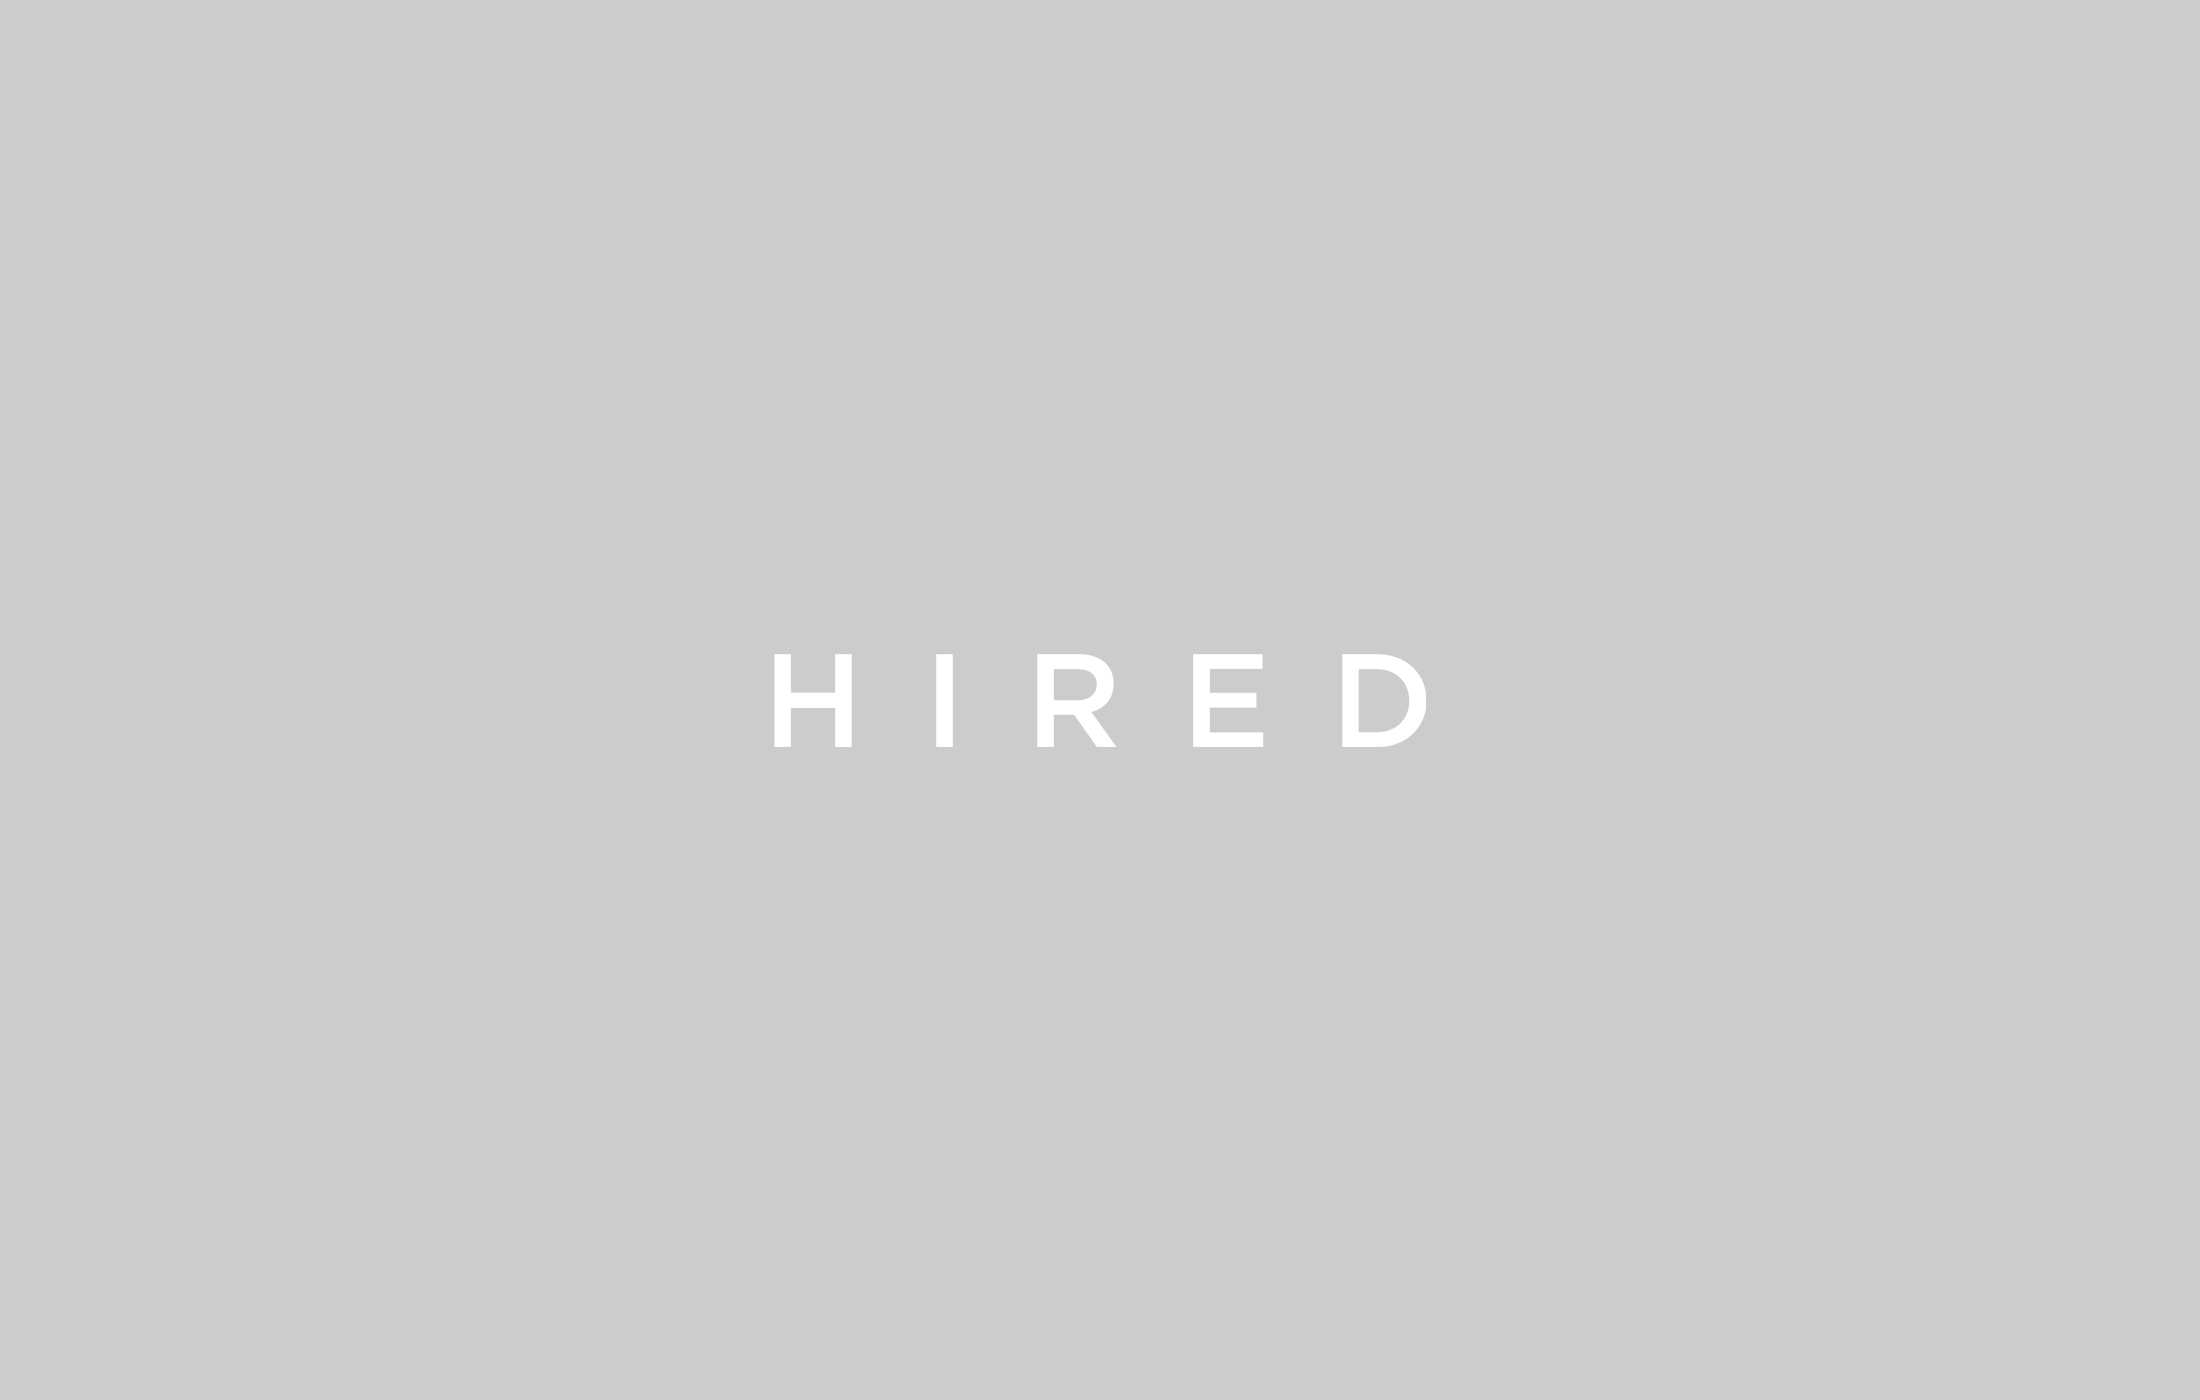 hired-partners-with-sequoia-capital-opens-up-to-international-engineers